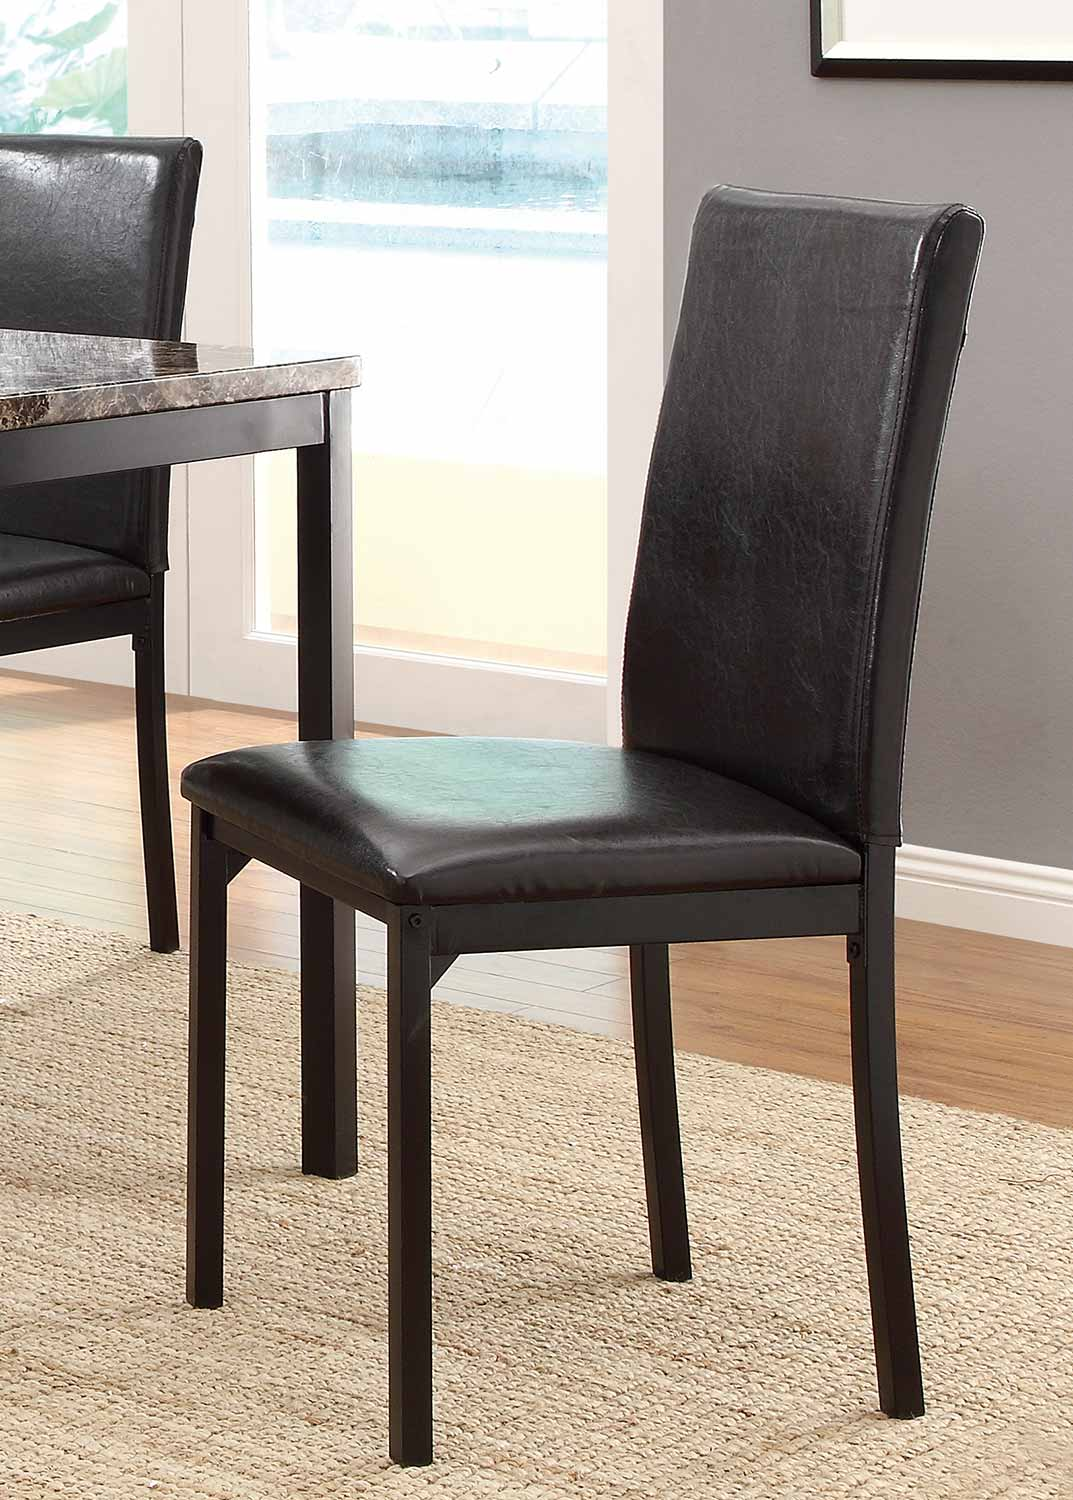 Homelegance Tempe Counter Height Chair - Black Metal